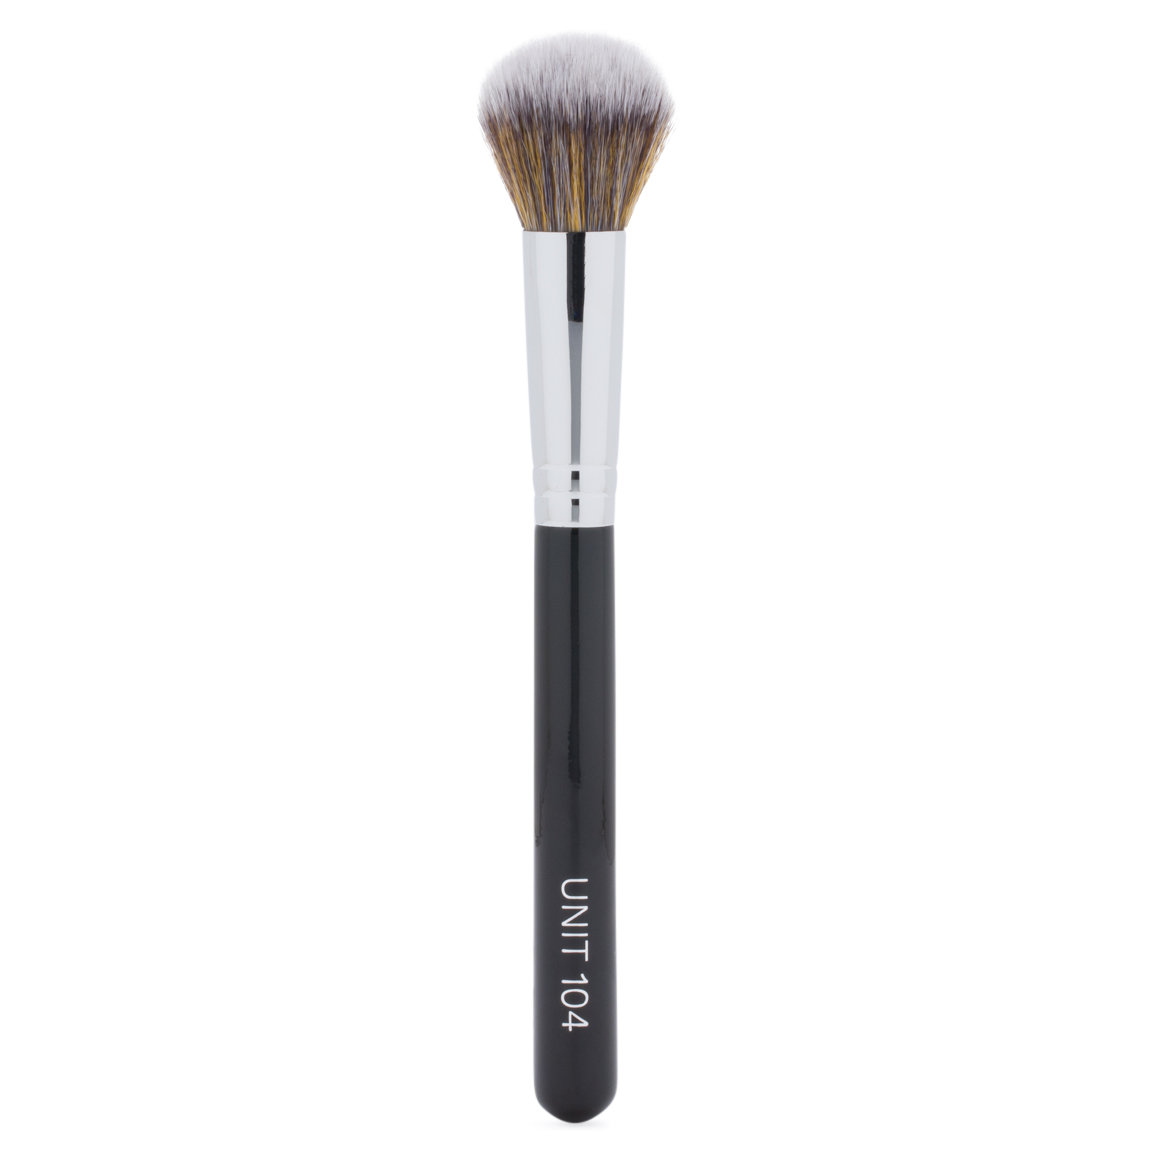 UNIT 104 Powder Brush